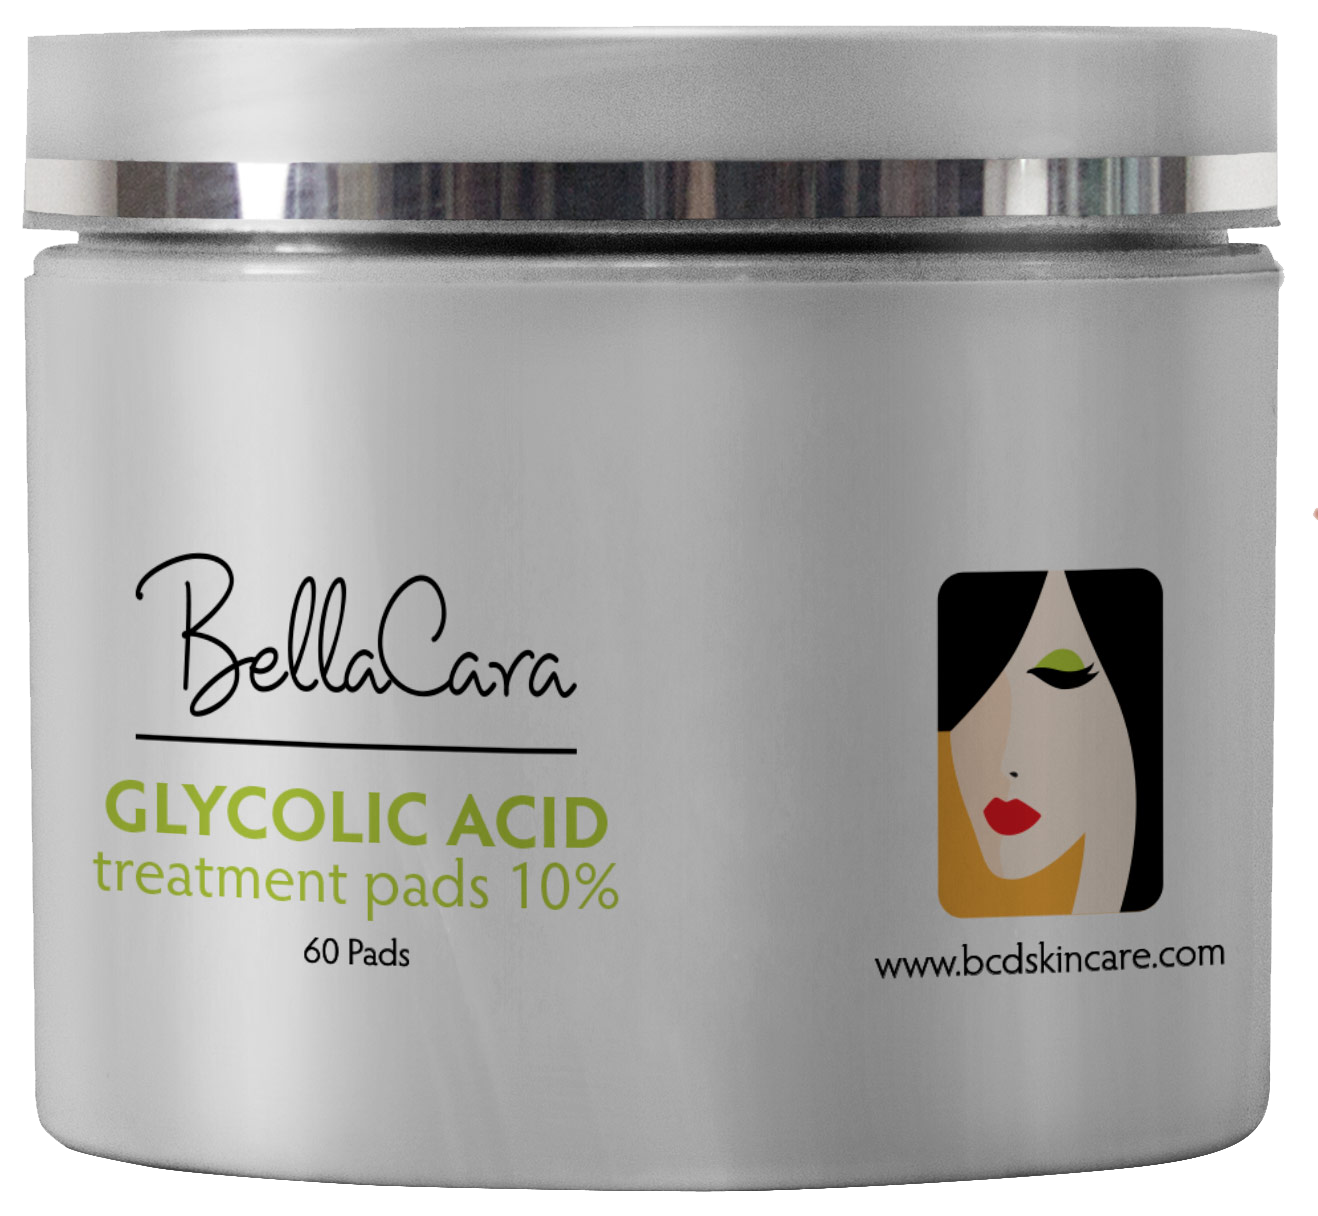 Glycolic Acid Treatment Pads 10%.png